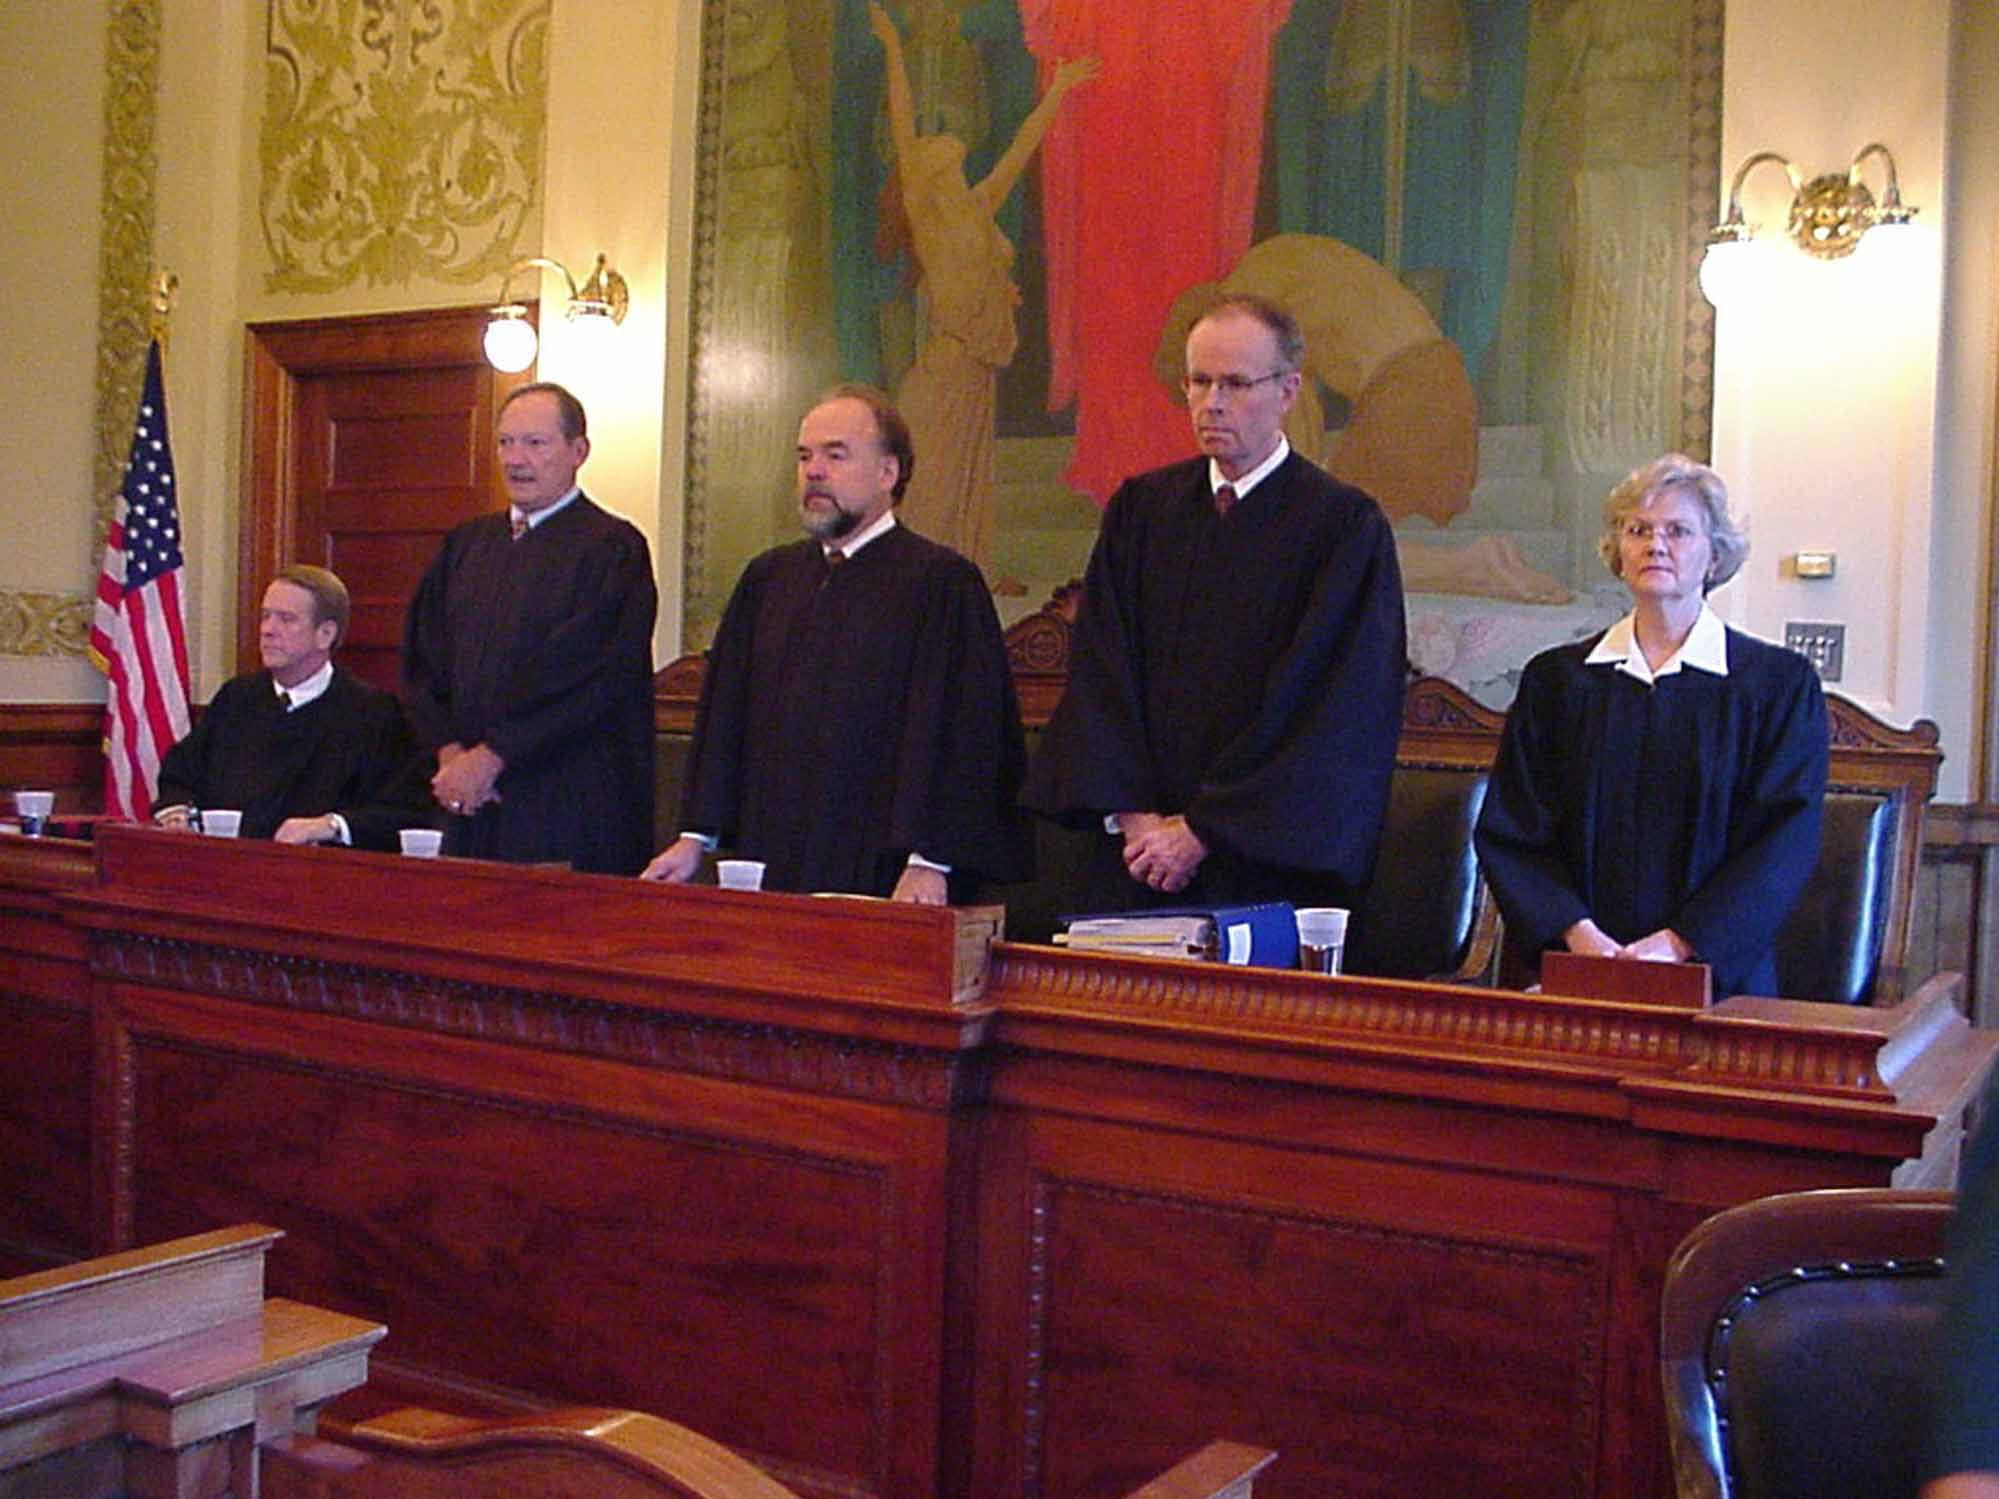 ** FILE ** The South Dakota Supreme Court, shown at Pierre, S.D., in this Aug. 26, 2003, file photo, has ruled that an unlimited homestead exemption that is designed to protect older South Dakotans from loss of their homes to creditors is unconstitutional. There was no immediate word Thursday if the state Revenue Department will offer remedial legislation next year. Shown, from left, Justices Steven Zinter, Richard W. Sabers, David Gilbertson, John K. Konenkamp and Judy Meierhenry. (AP Photo/Joe Kafka)